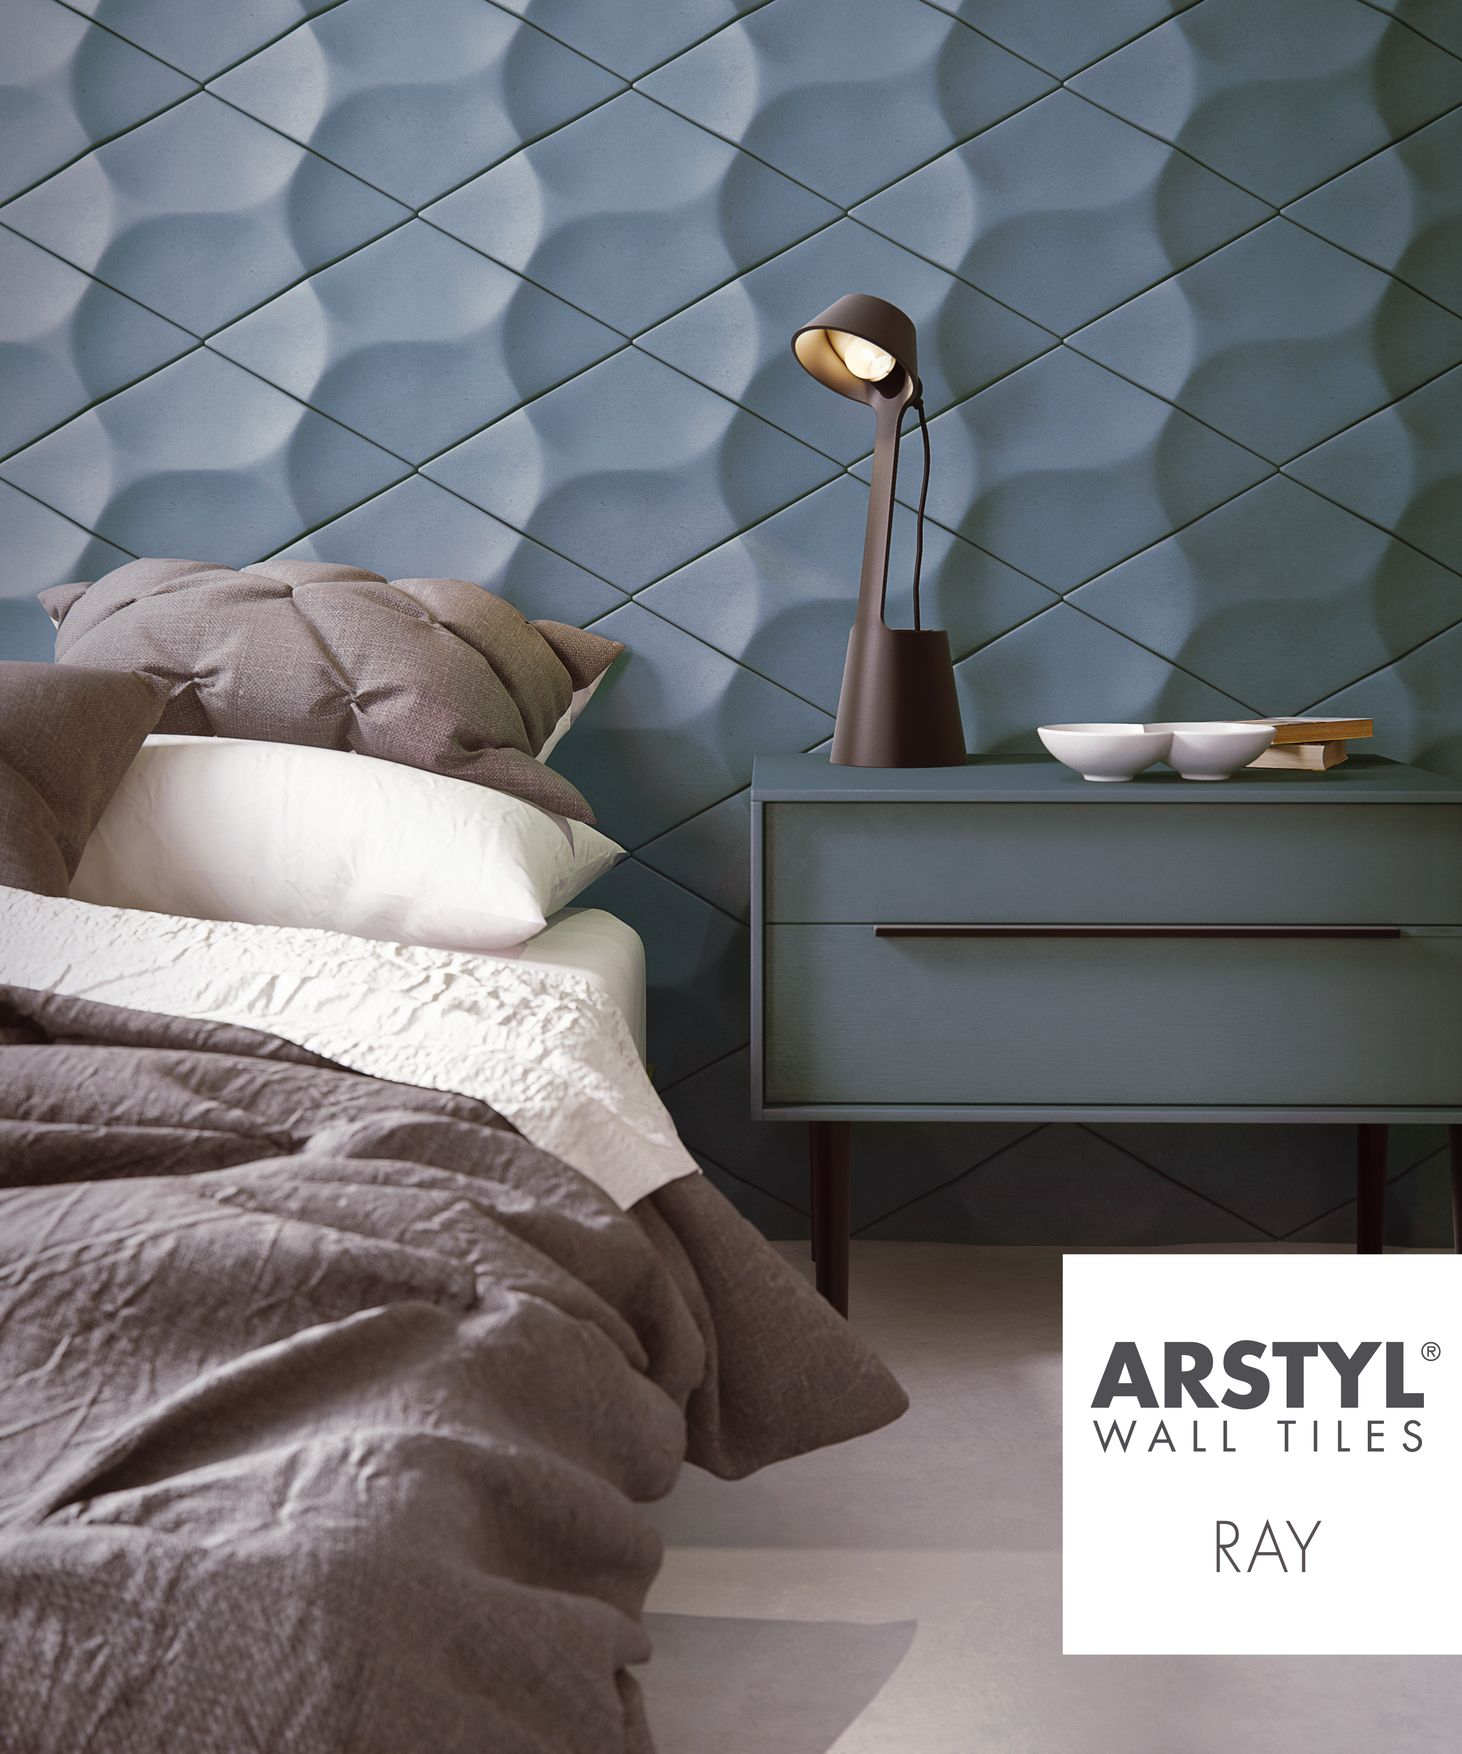 Arstyl Decorative 3d Wall Elements 3dtiles Wall Tiles Tile